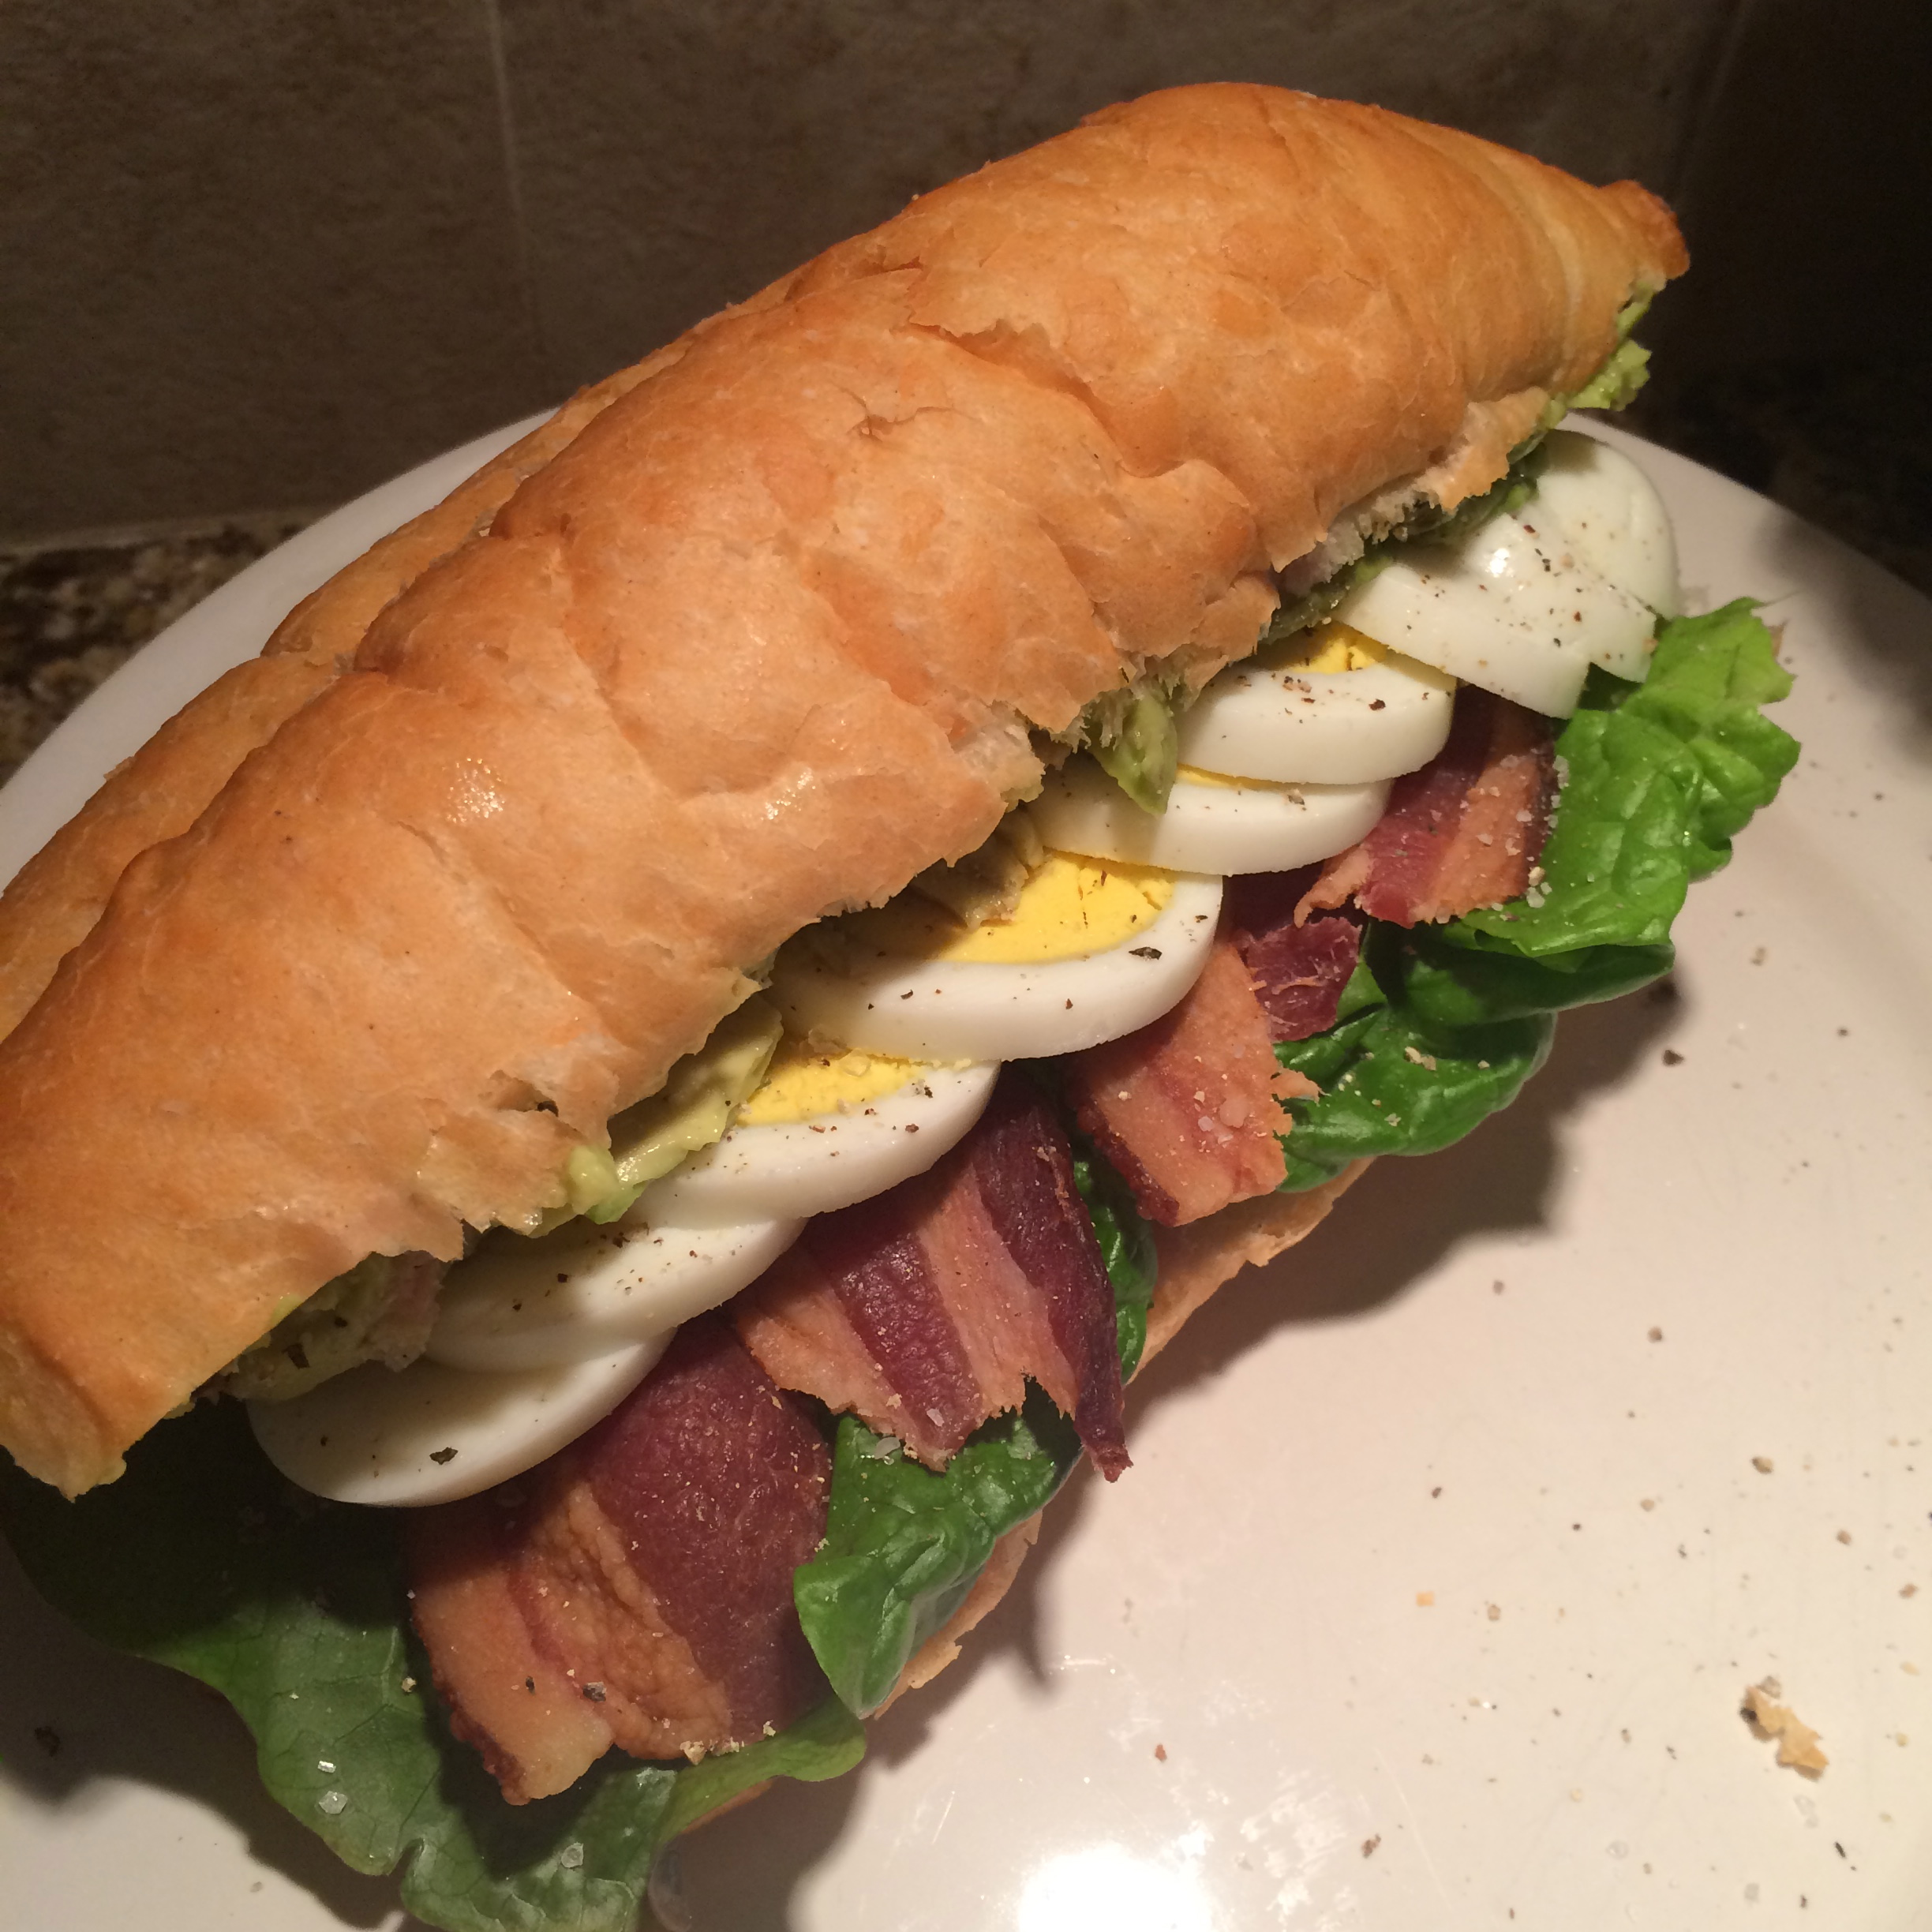 Avocado, Bacon and Egg Sandwich